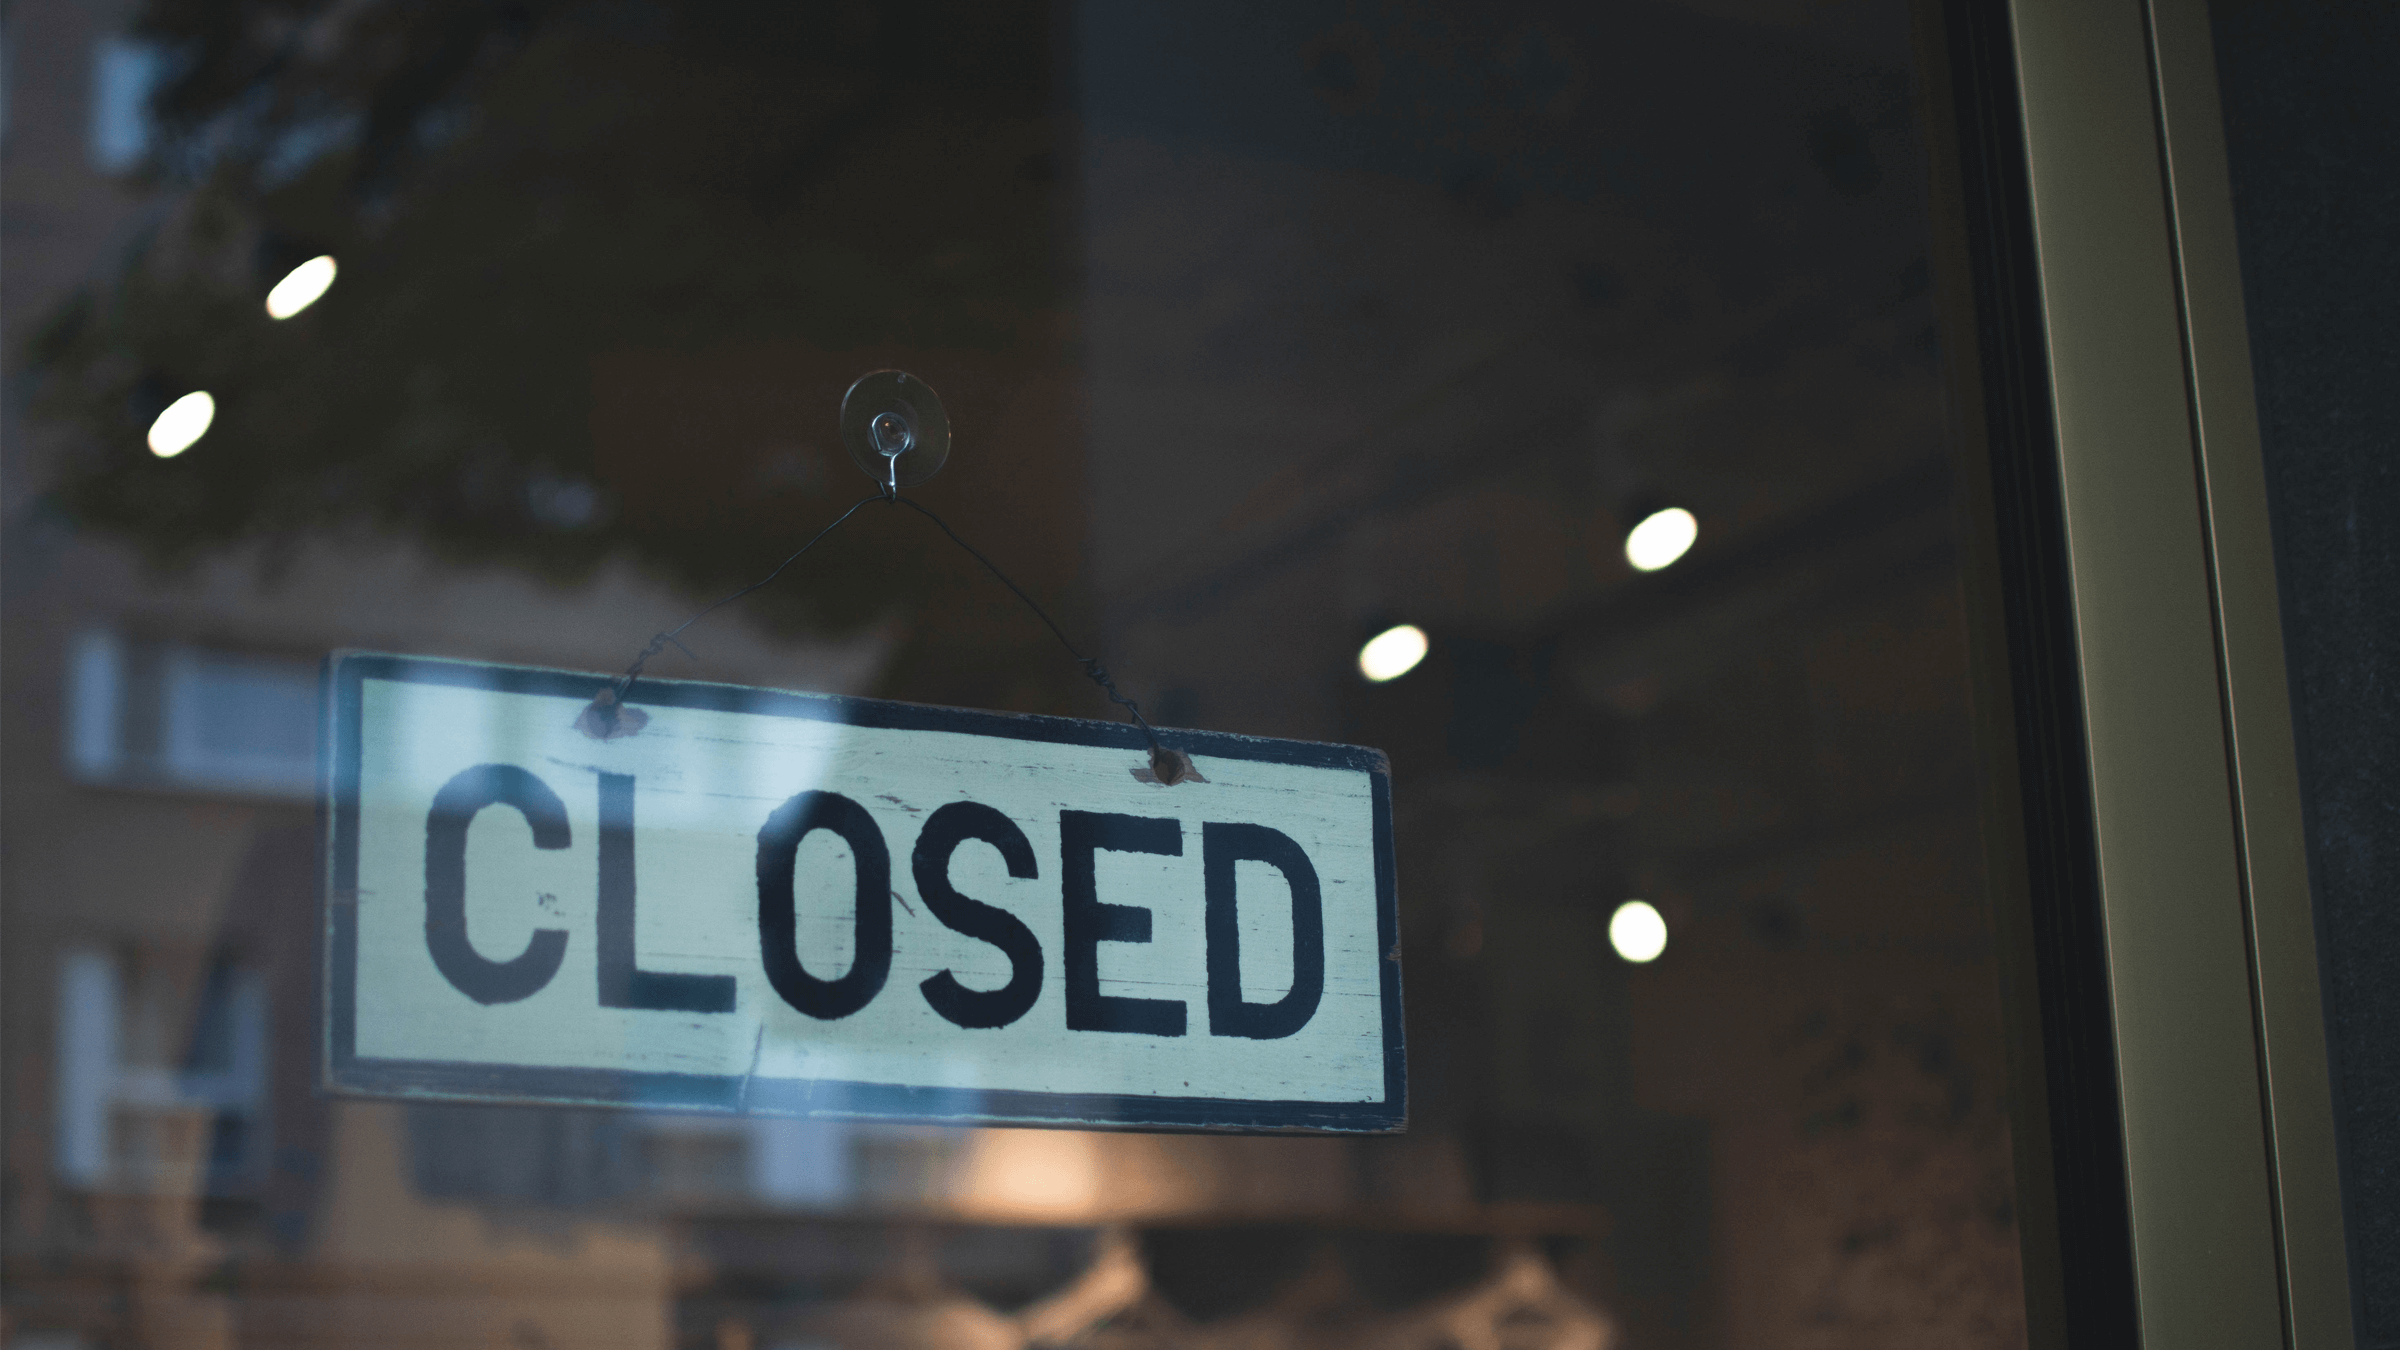 Closed sign through window